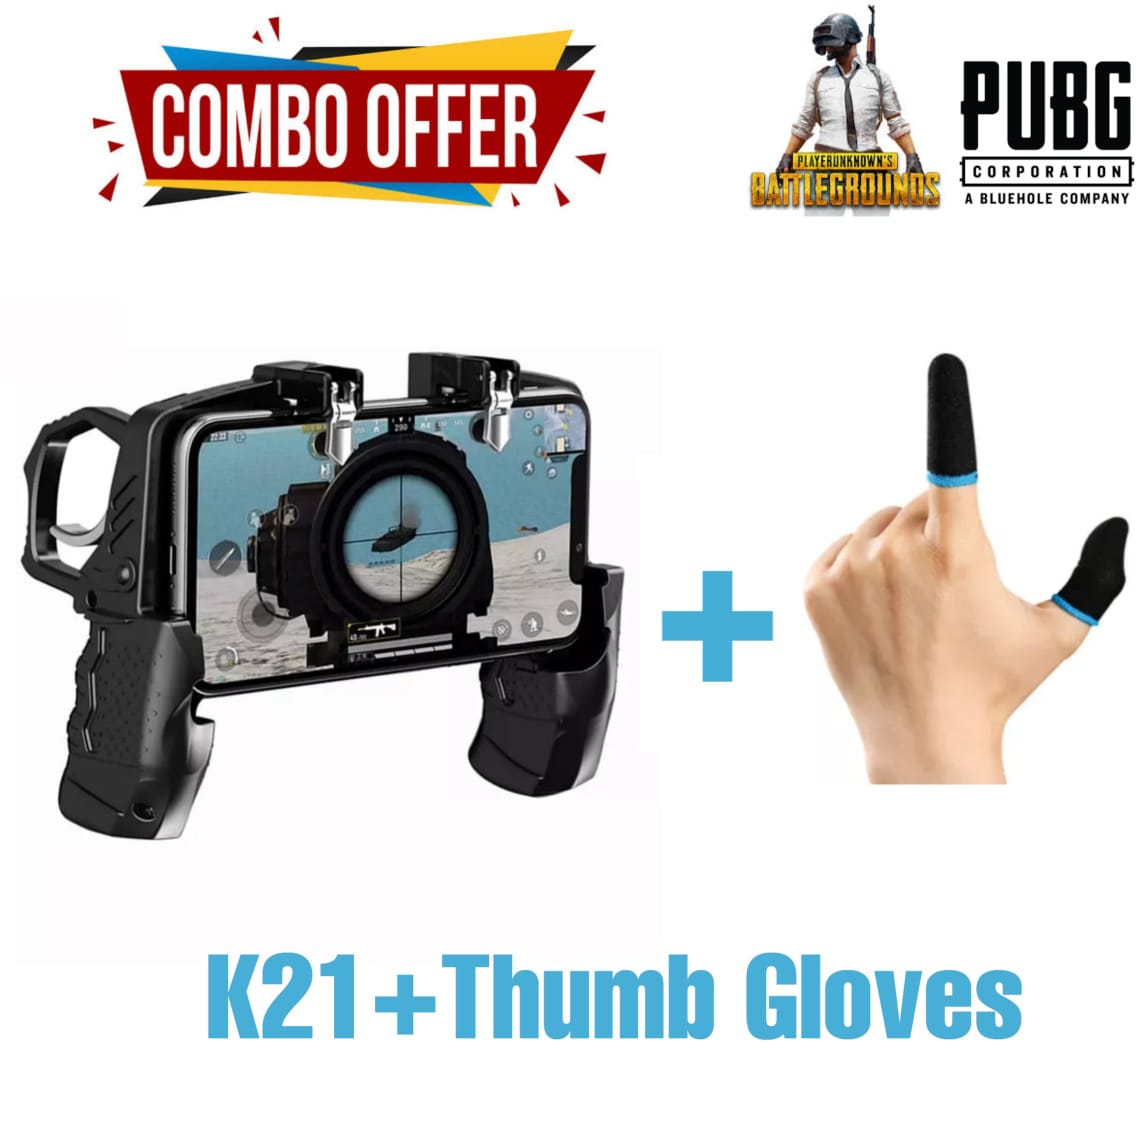 K21 Mobile Game Controller + Thumb Gloves for PUBG/Call of Duty/Fortnite for 4.7- 6.5 inch IOS & Android Phone Aim Trigger Fire Buttons L1R1 Shooter Sensitive Joystick - K21 Gamepad - Pubg Thumb Sleeves